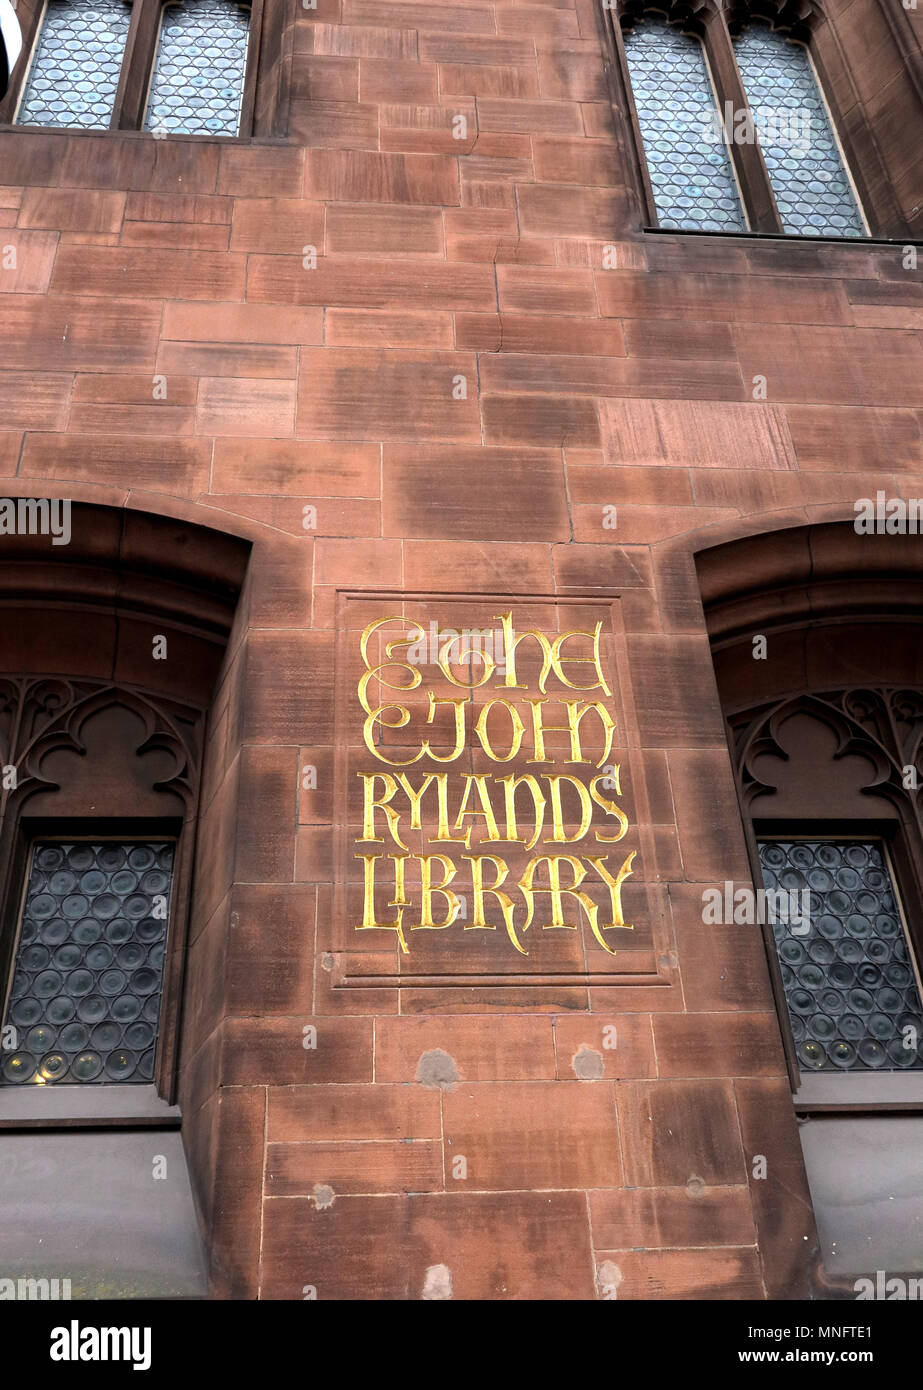 @HotpixUK,Gotonysmith,John Rylands,Library,city,centre,outside,building,stone,Victorian,doors,entrance,sandstone,front,neo,gothic,Enriqueta Augustina Rylands,The University of Manchester Library,University,library,William Caxton,historic,history,historic buildings,tourist,tourism,reader,readers,borrowers,historic library,historic libraries,Rylands Library,gothic architectural style,architecture,exterior,gold,lettering,sign,street view,arts crafts